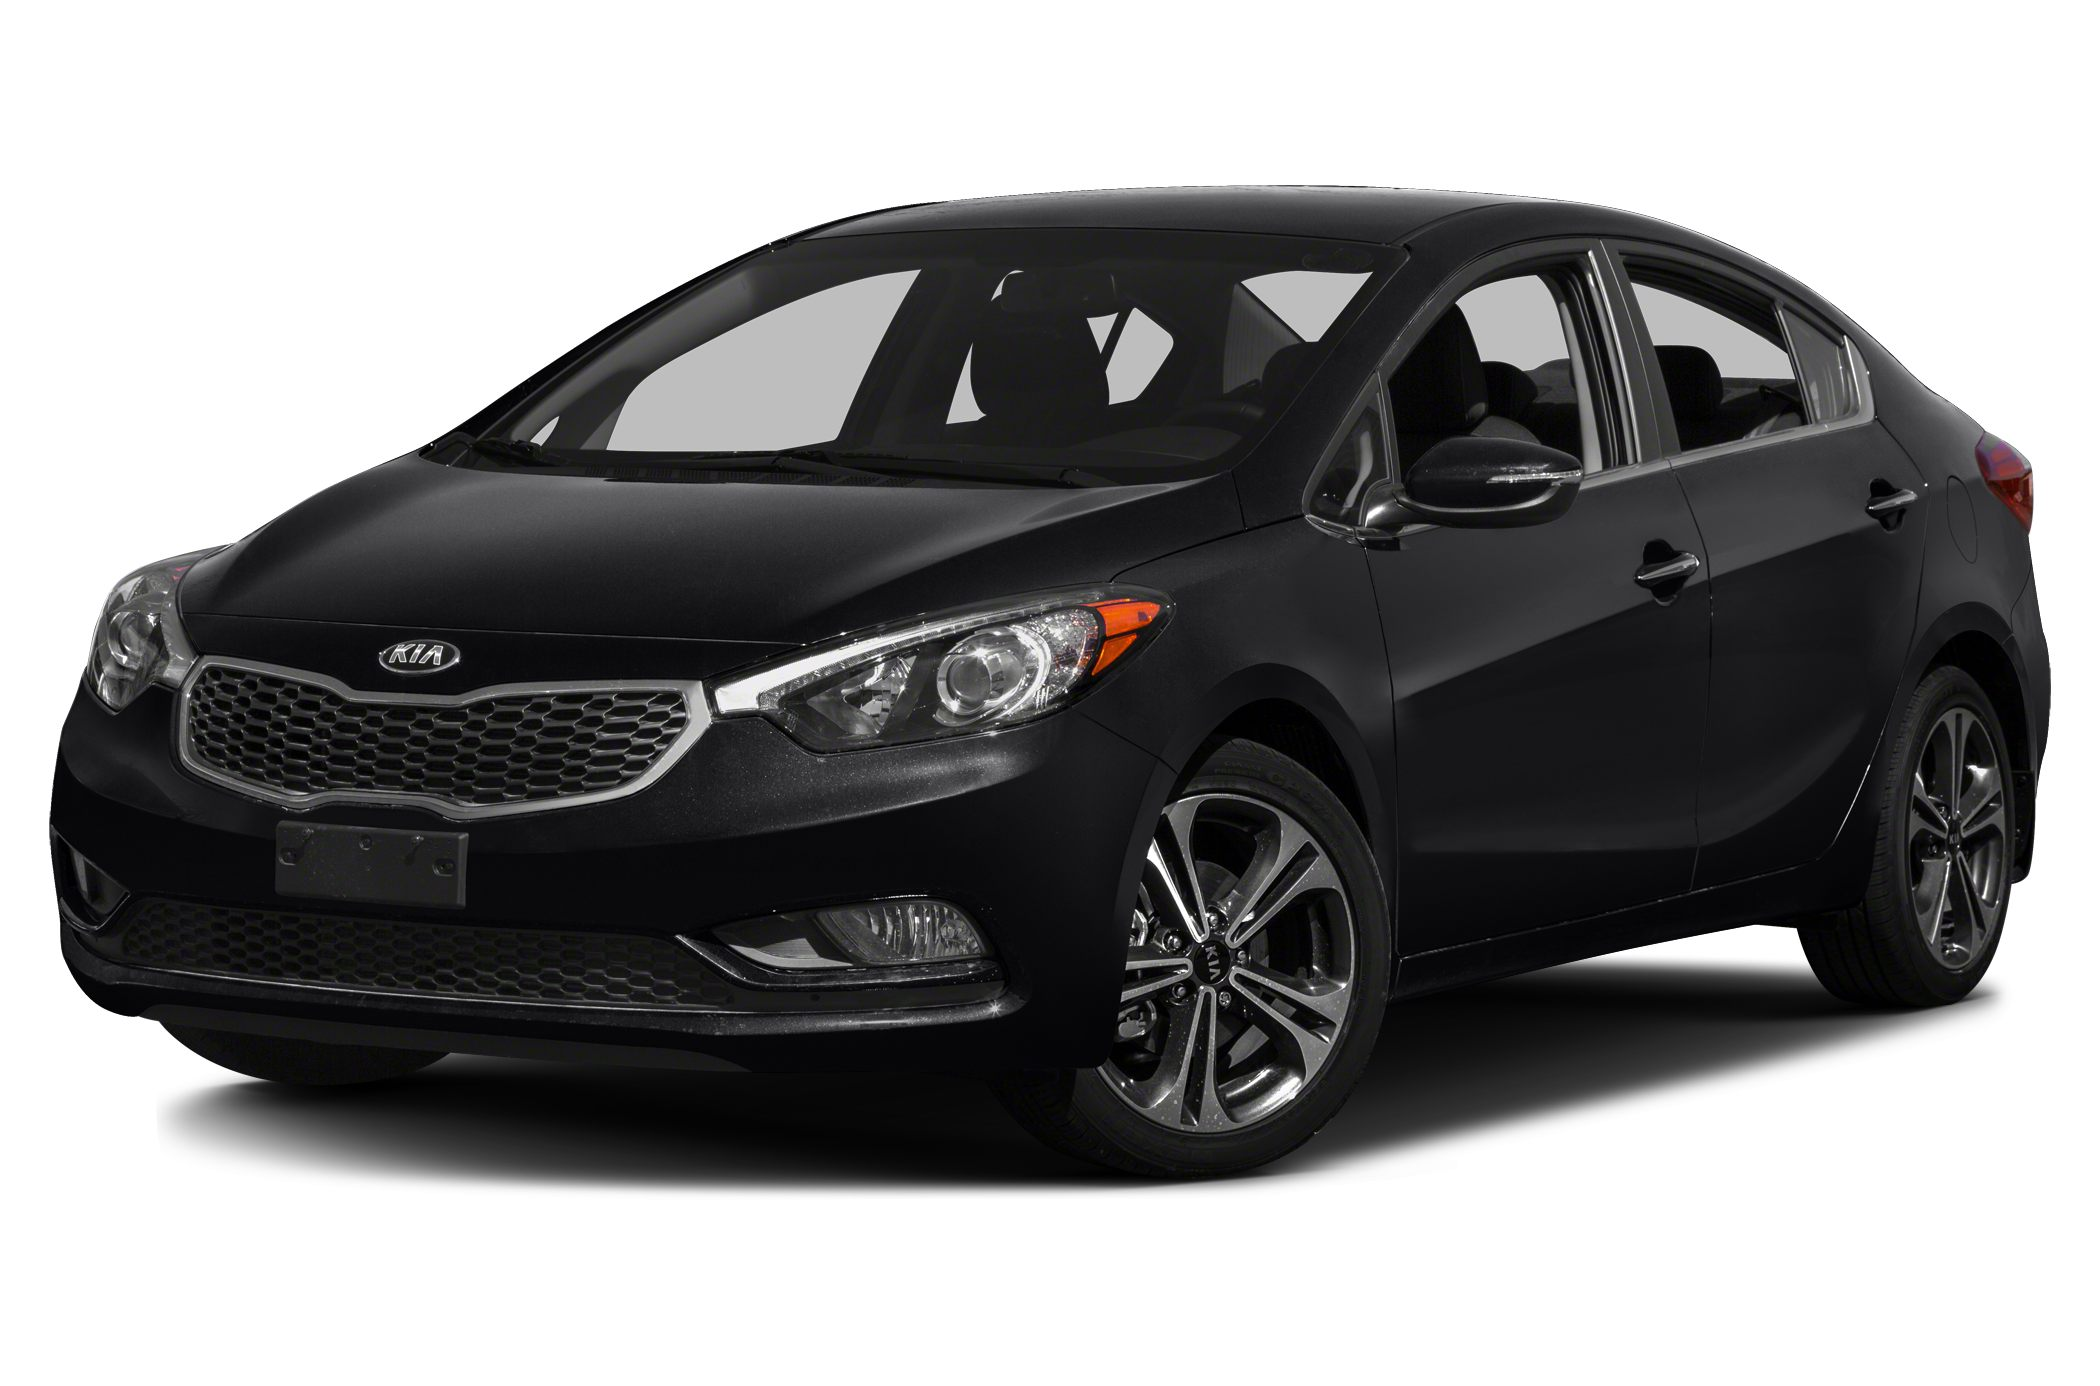 2014 Kia Forte LX Sedan for sale in Nashville for $15,680 with 18,027 miles